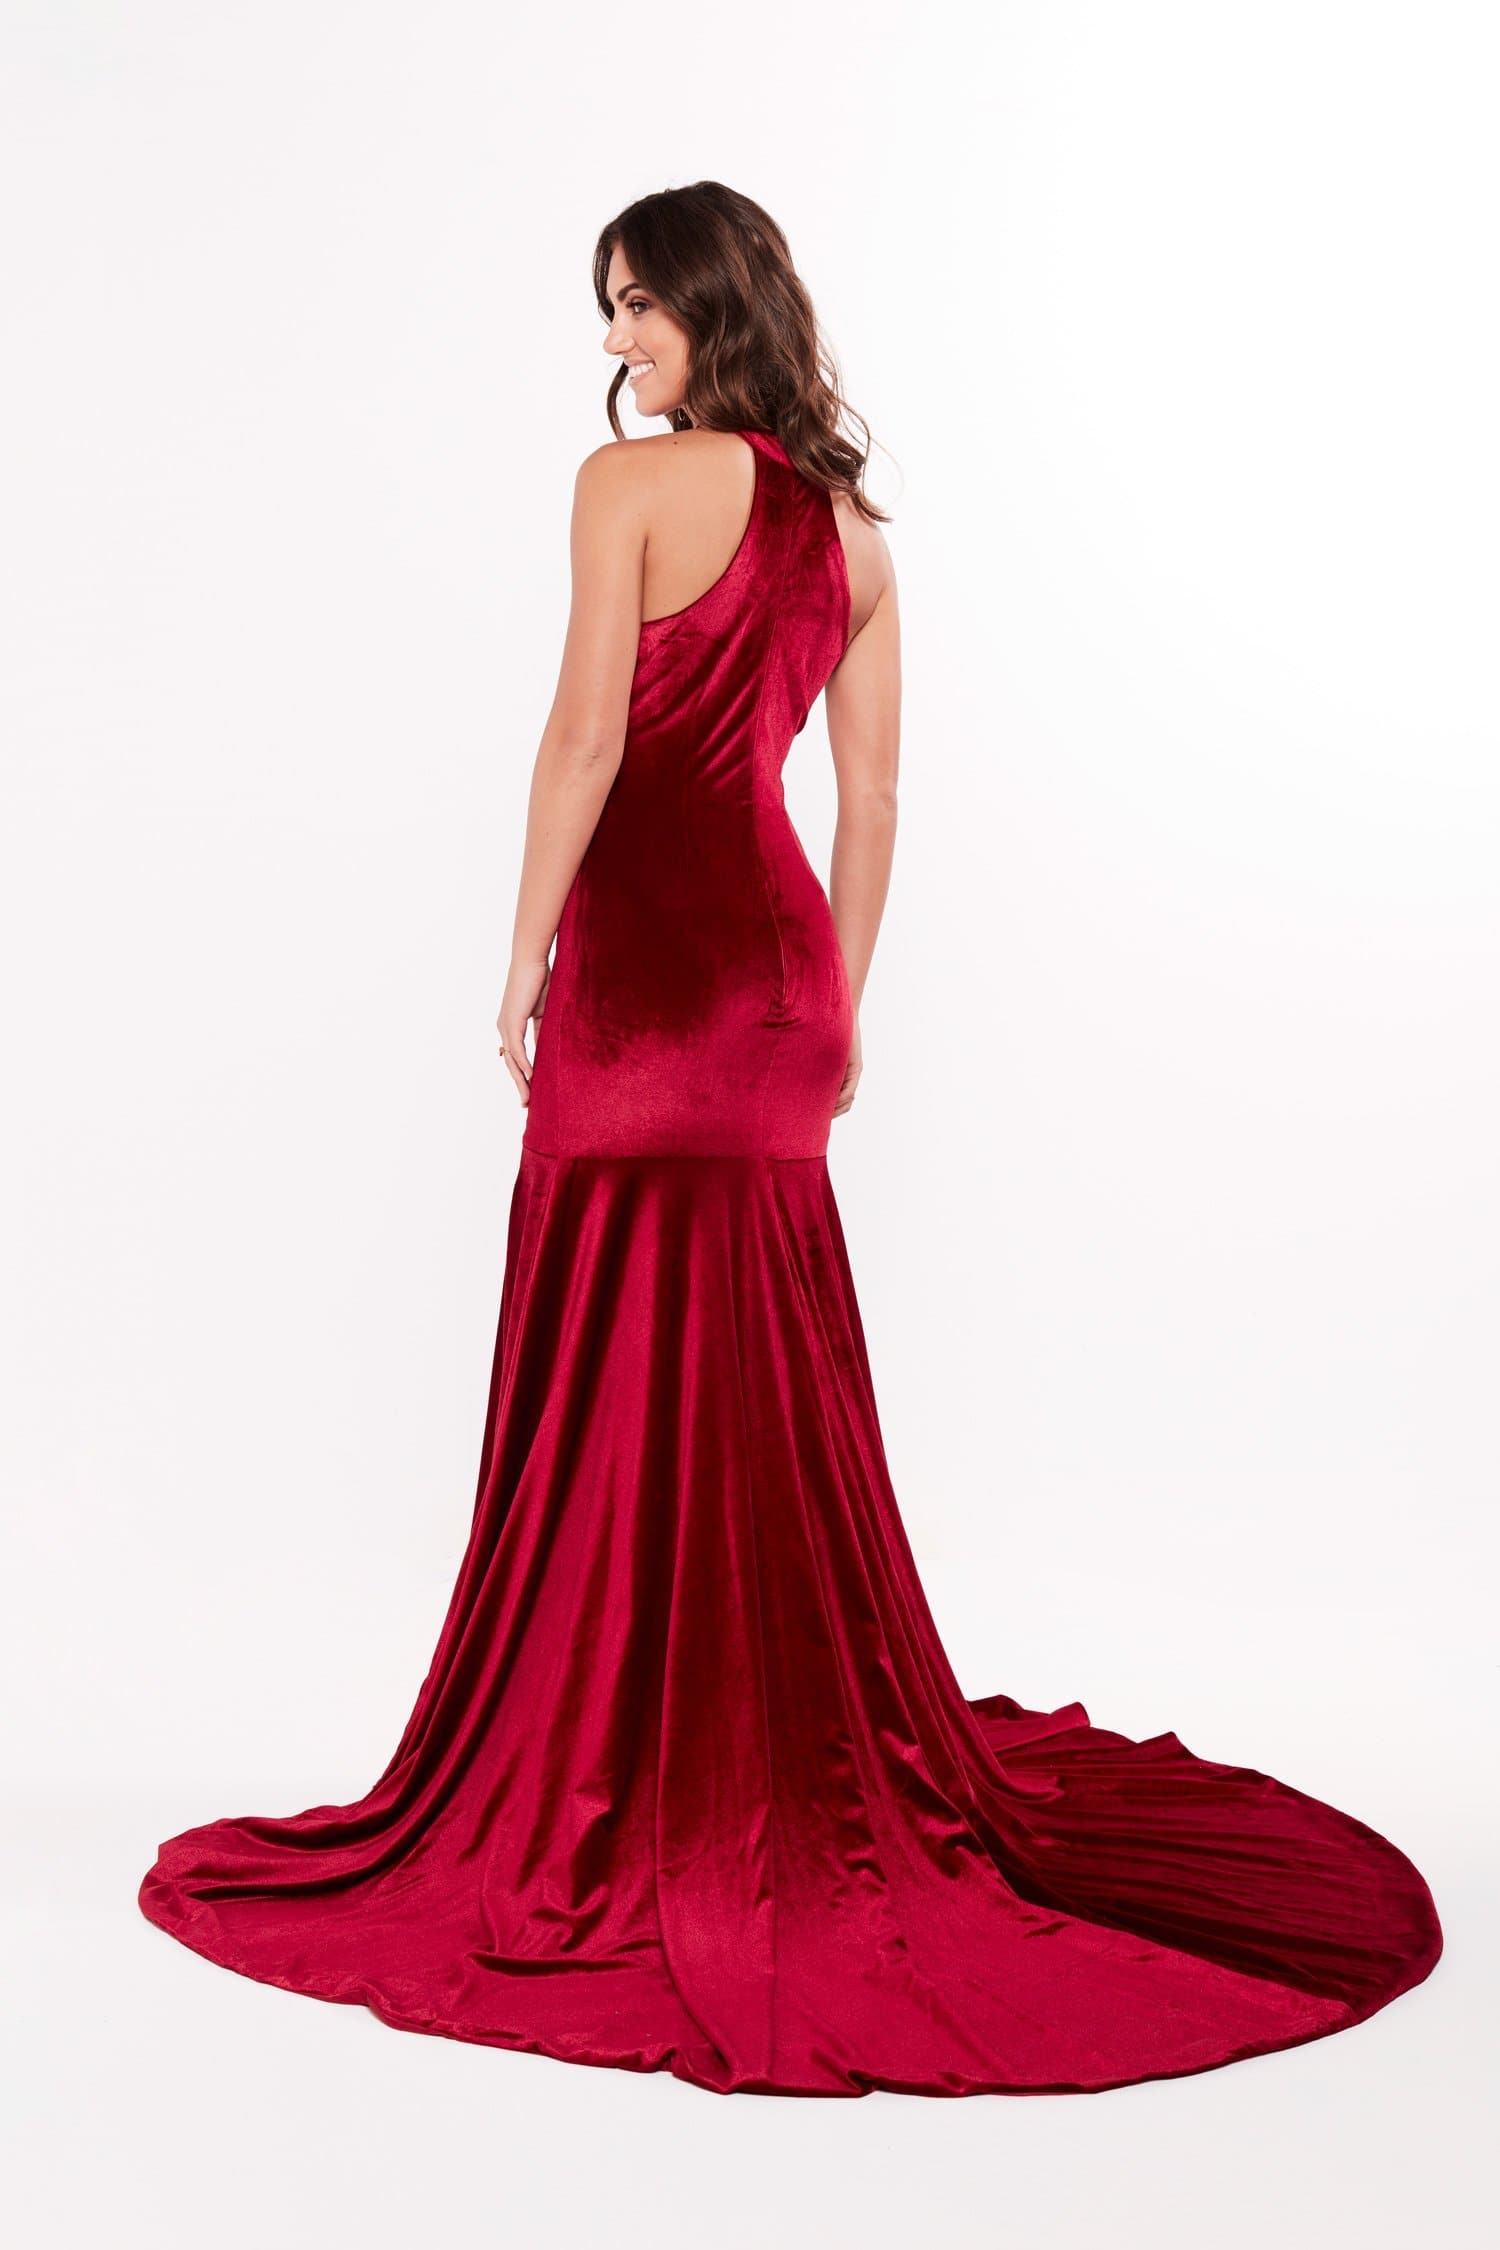 A&N Destiny - Deep Red Velvet Gown with Mermaid Train